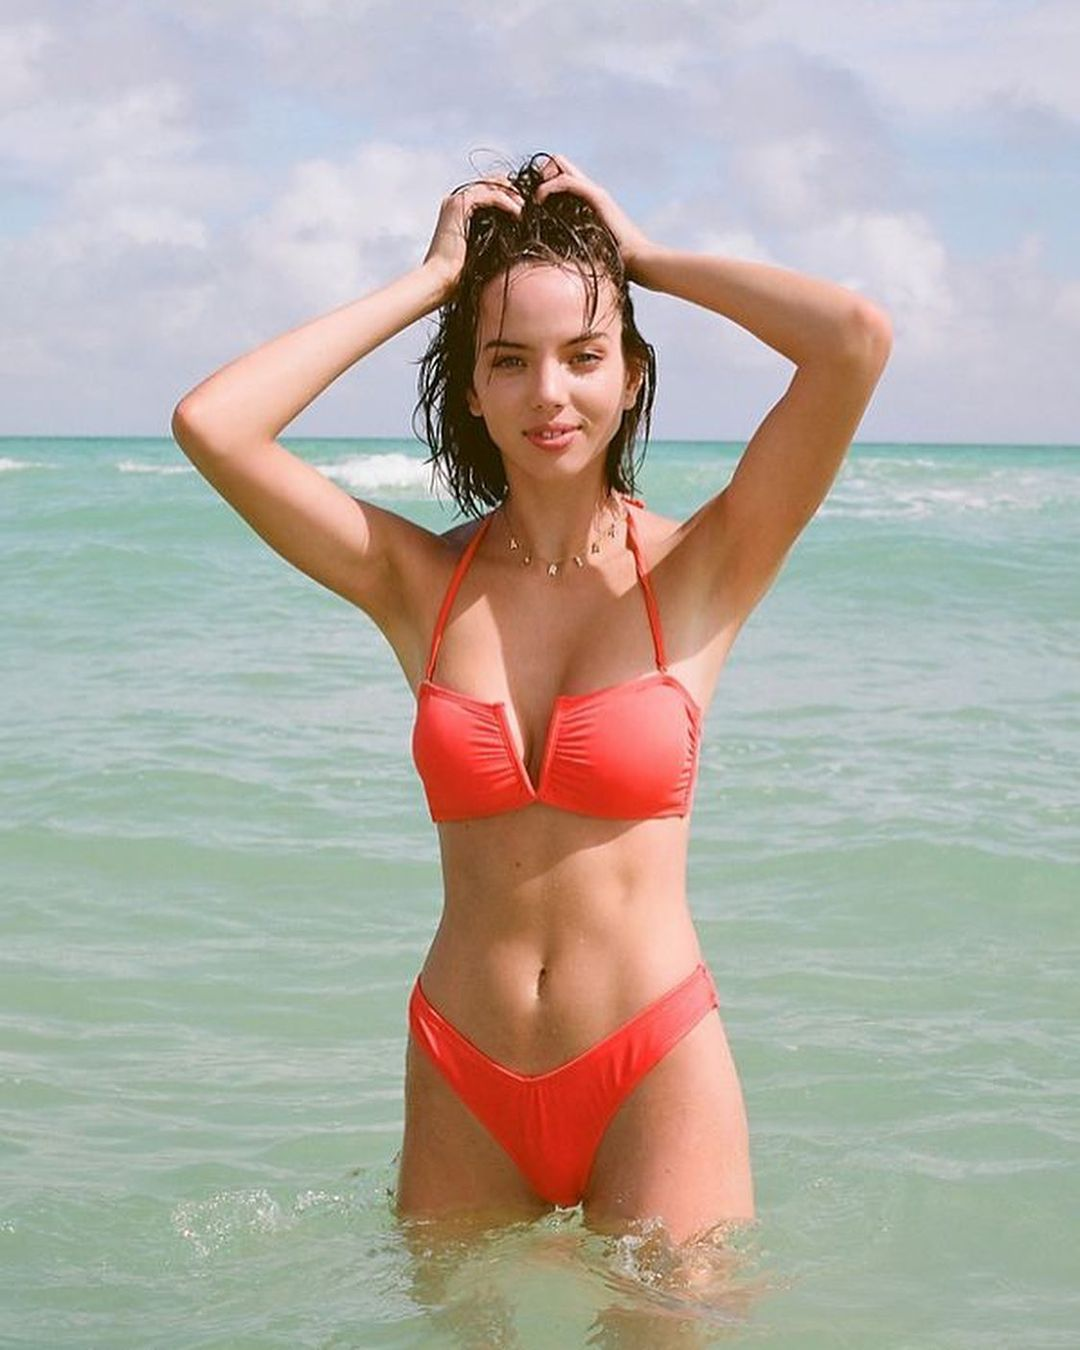 Model Adriana Mora is quickly becoming popular on Instagram 7